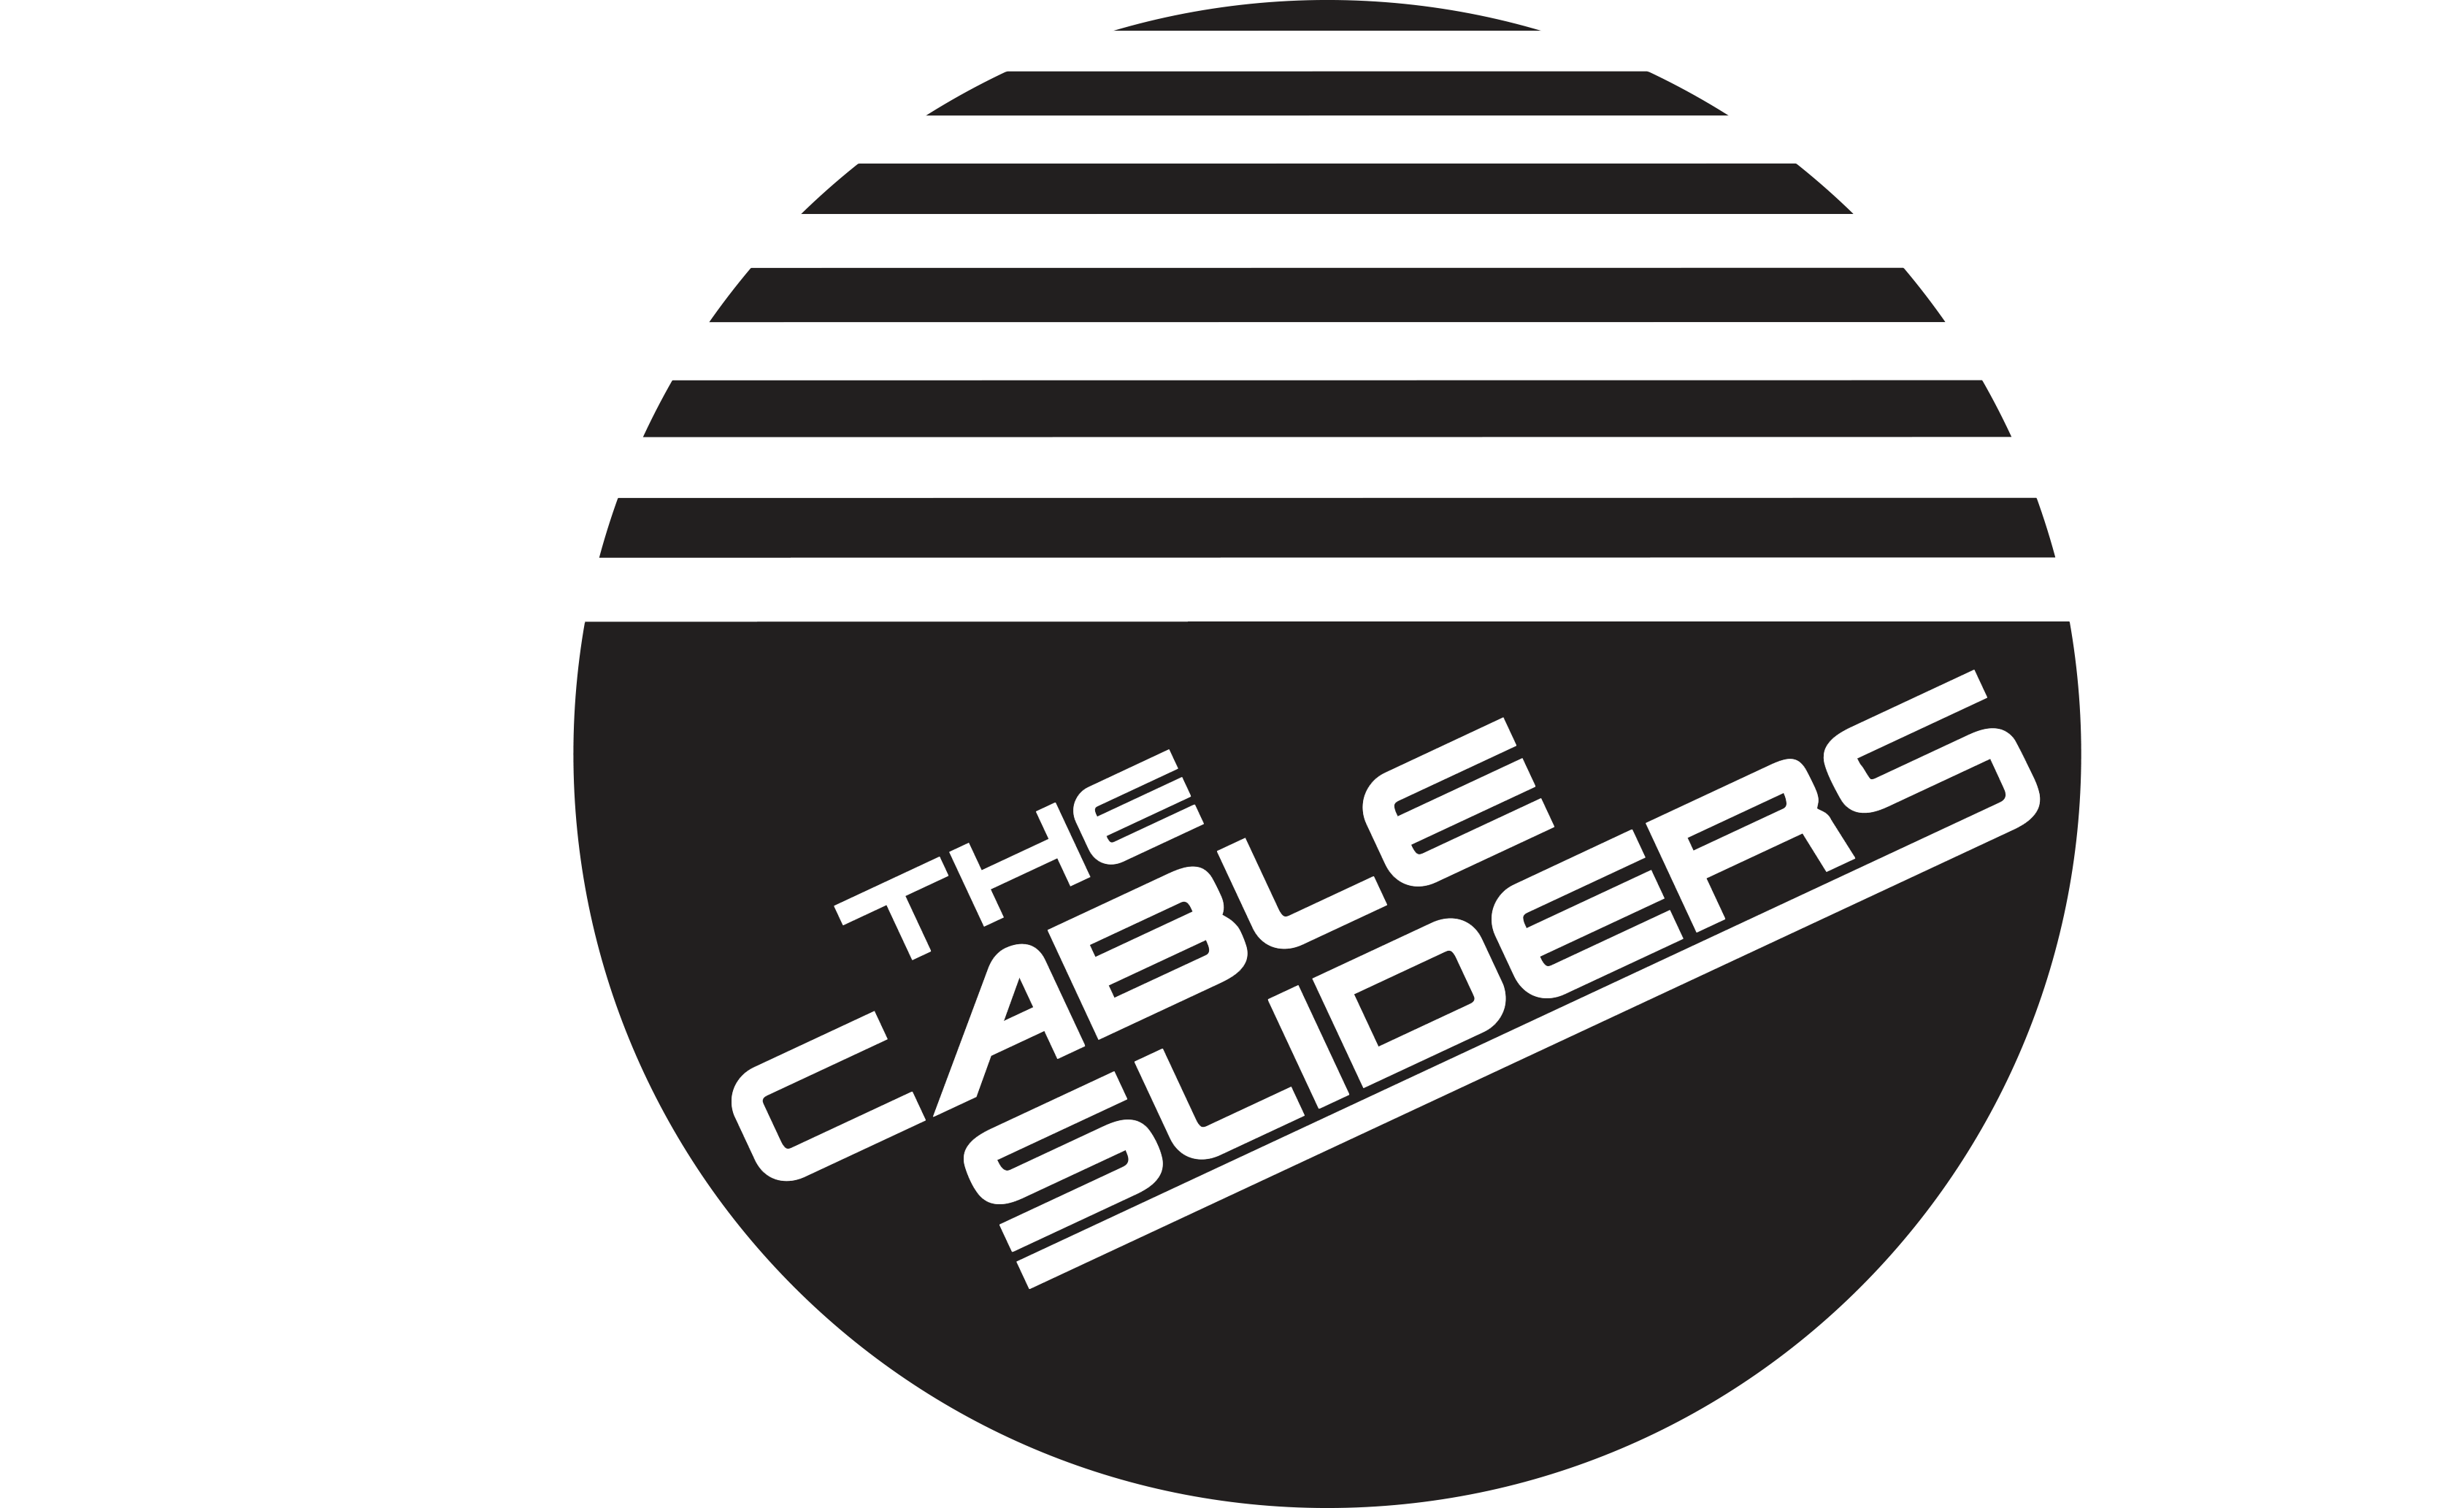 Cable Sliders